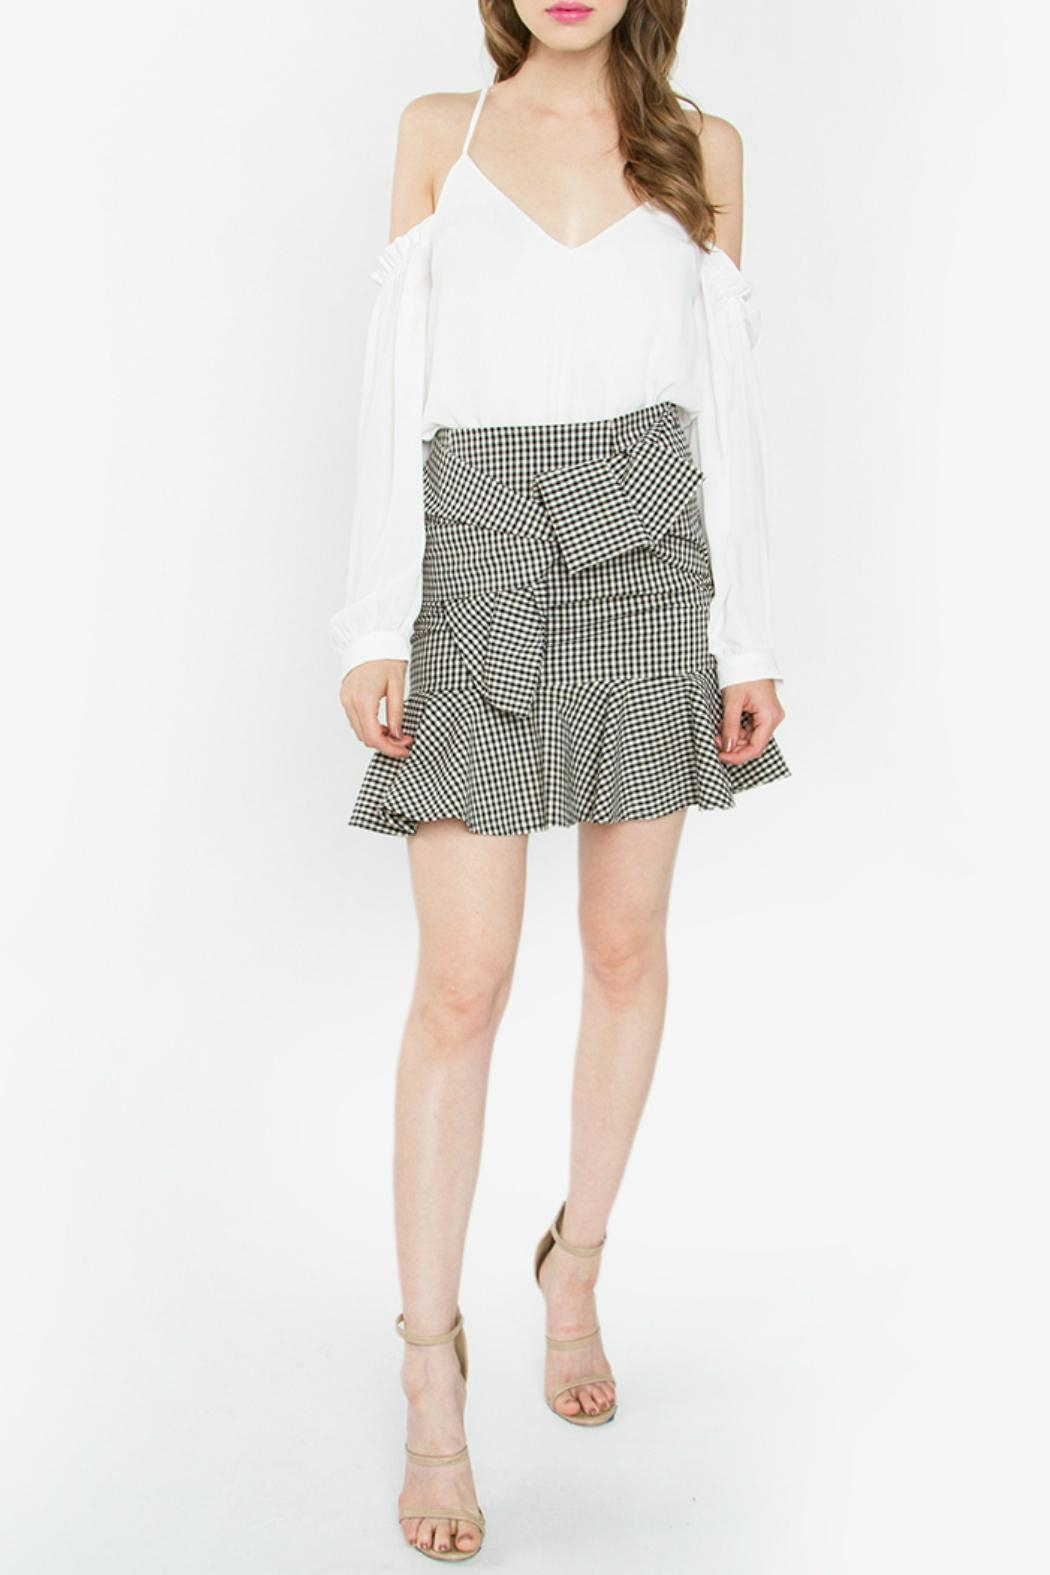 Sugar Lips Fete Gingham Skirt - Front Cropped Image